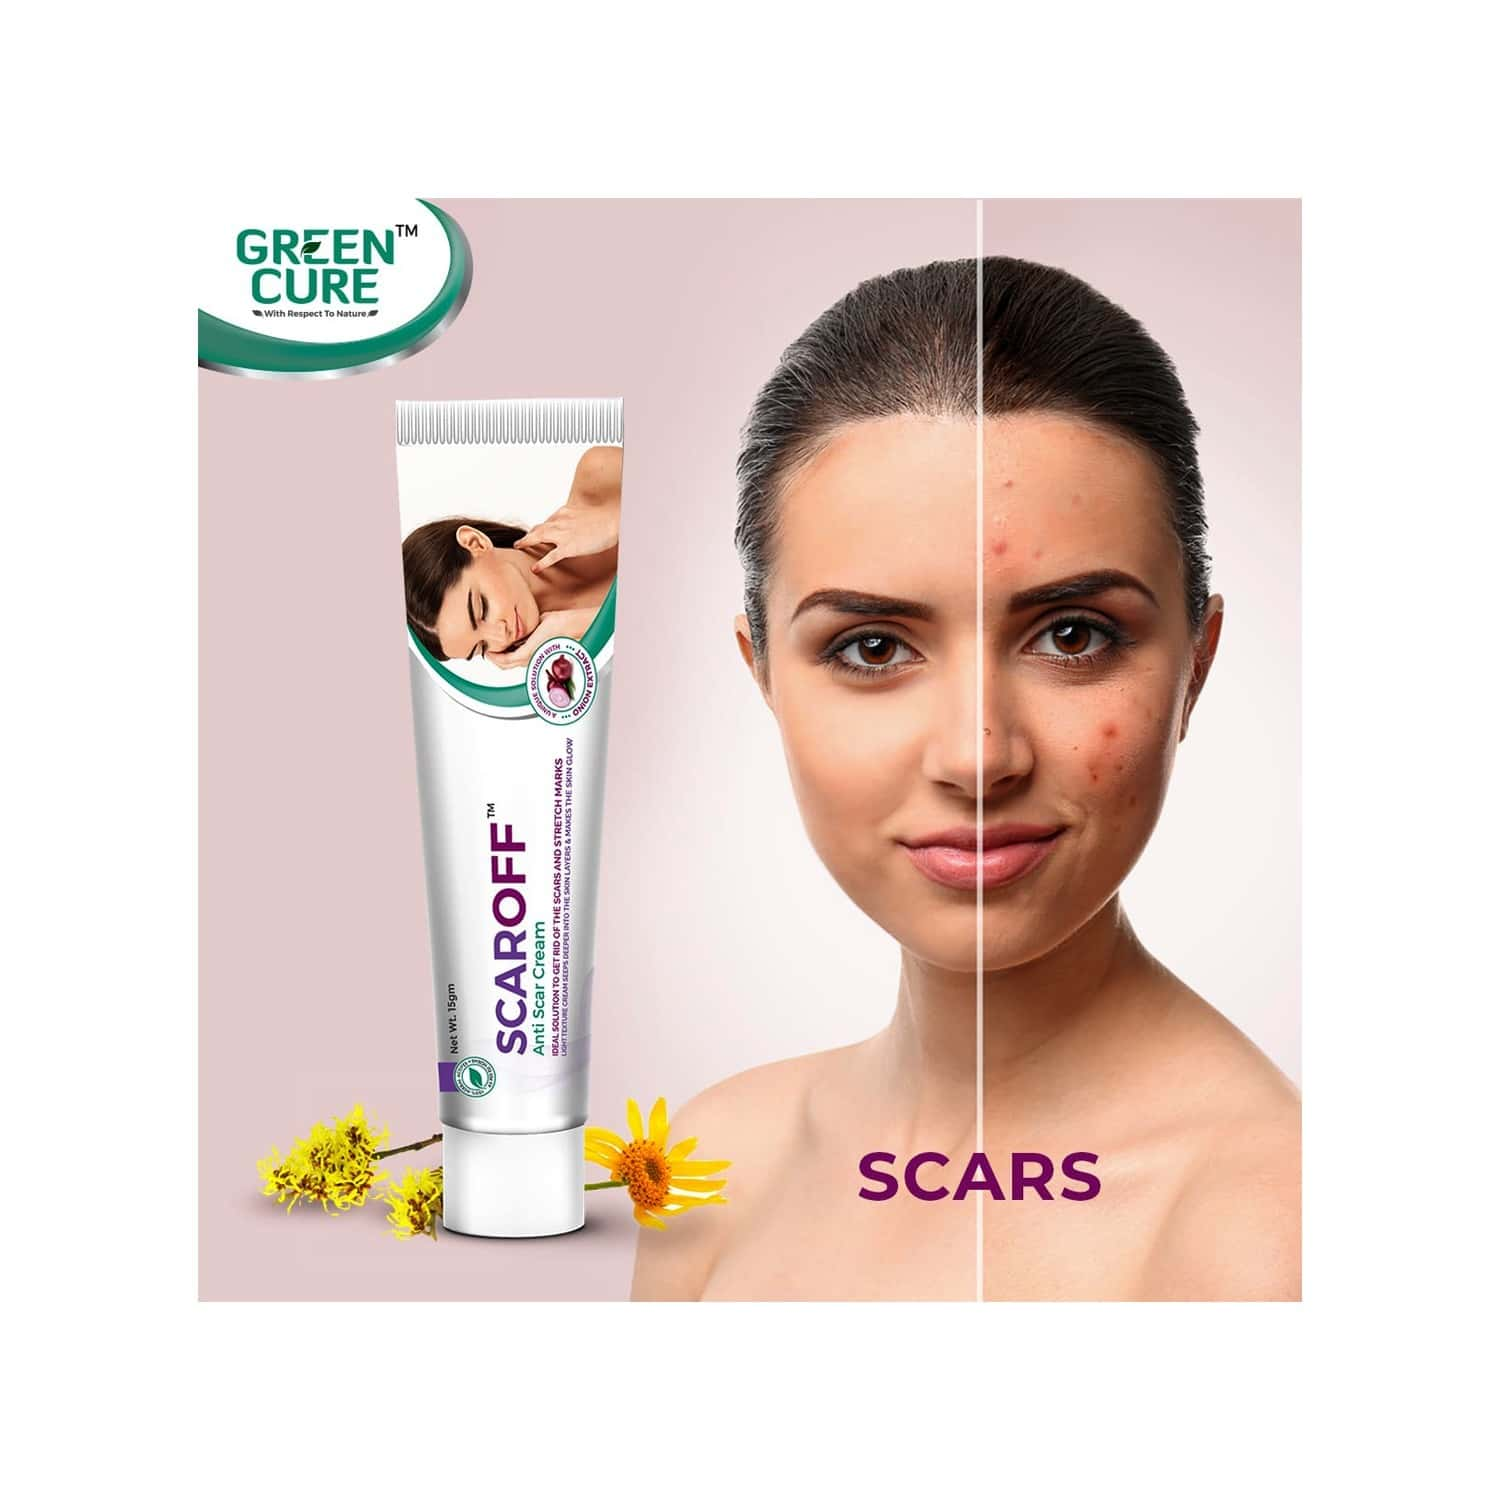 Green Cure Scaroff Scar Removal Cream, For Pimple Marks, Dark Spots, Blemishes & Stretch Marks With Arnica & Magnolia Extract - 15gm